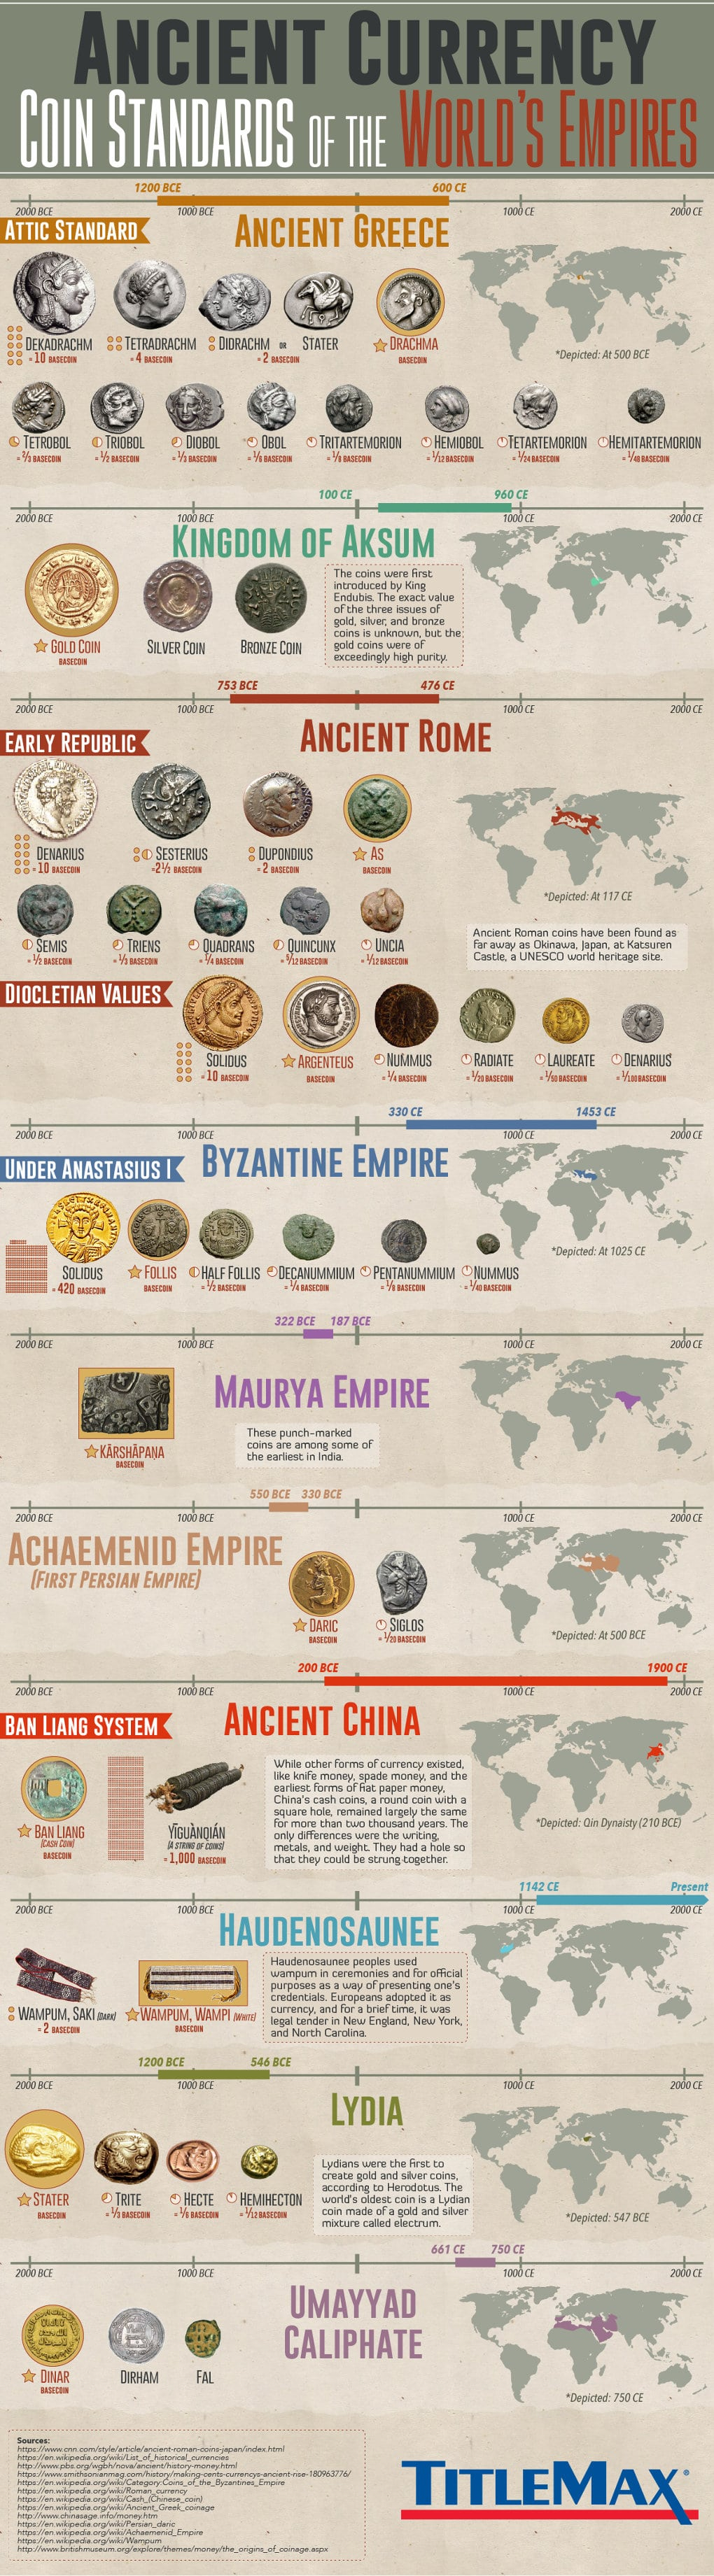 Ancient forms of currency Infographic